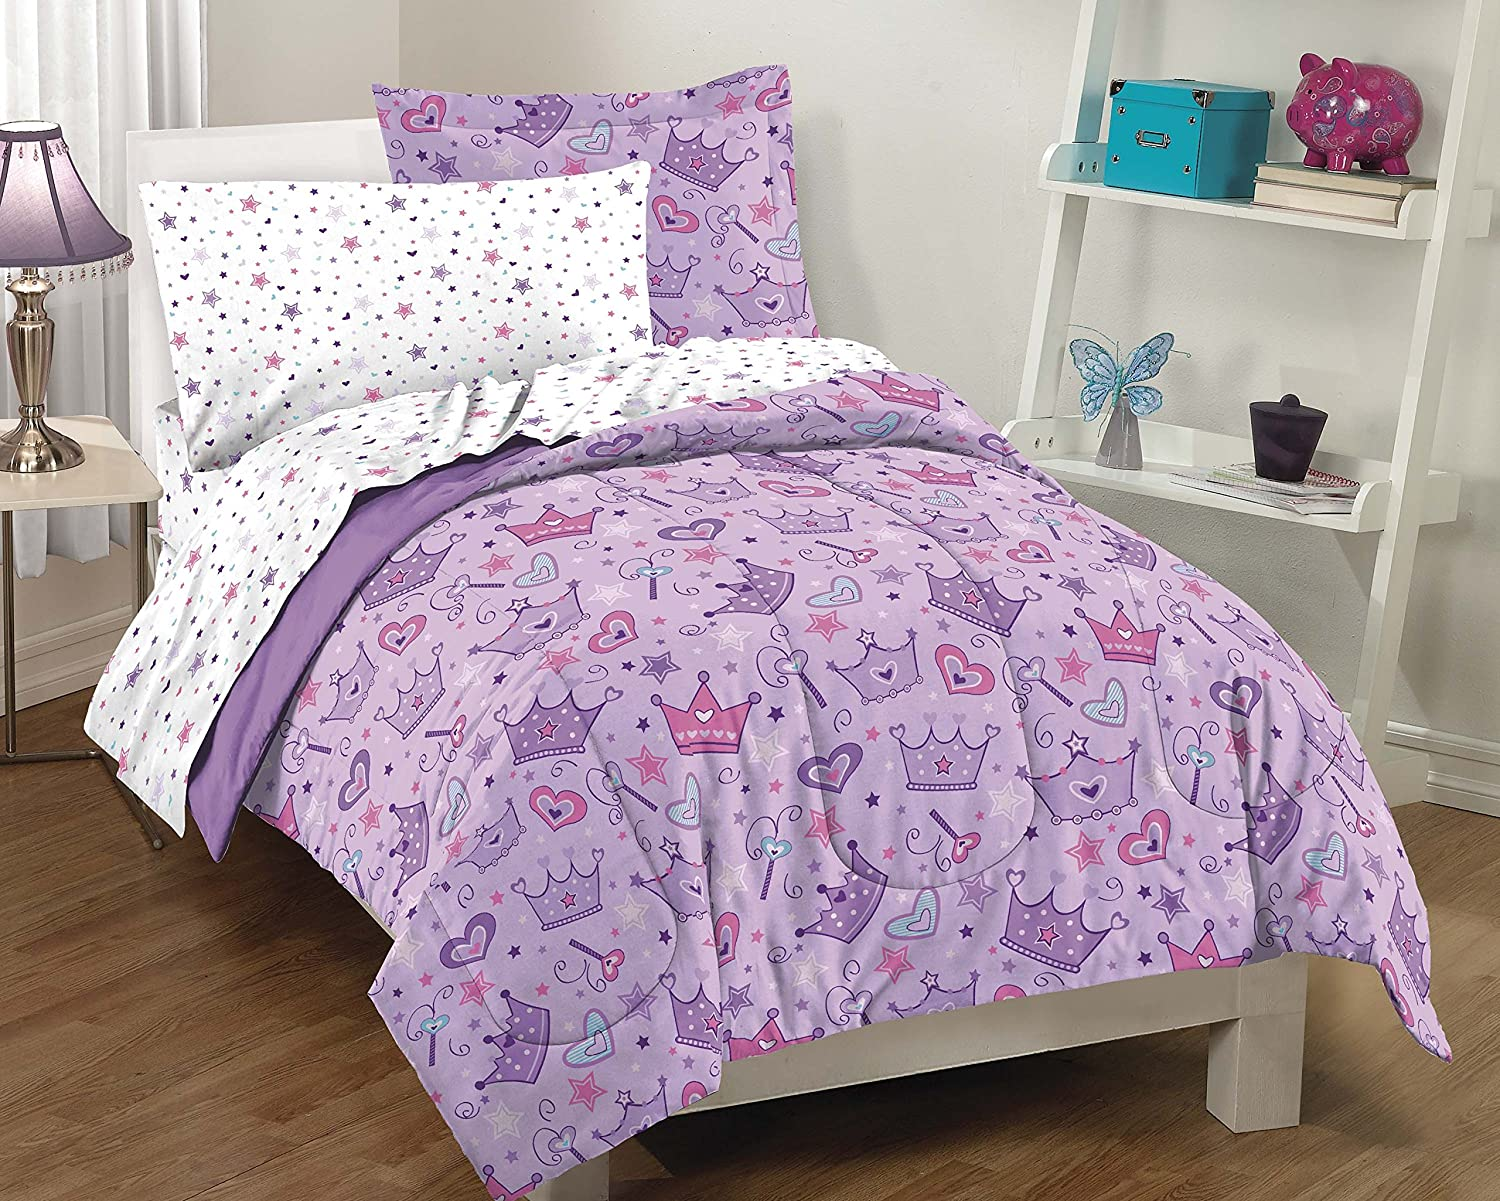 online shopping Korean Purple Lace bedding set bedspread romantic princess  bedclothes bed set cotton duvet covers